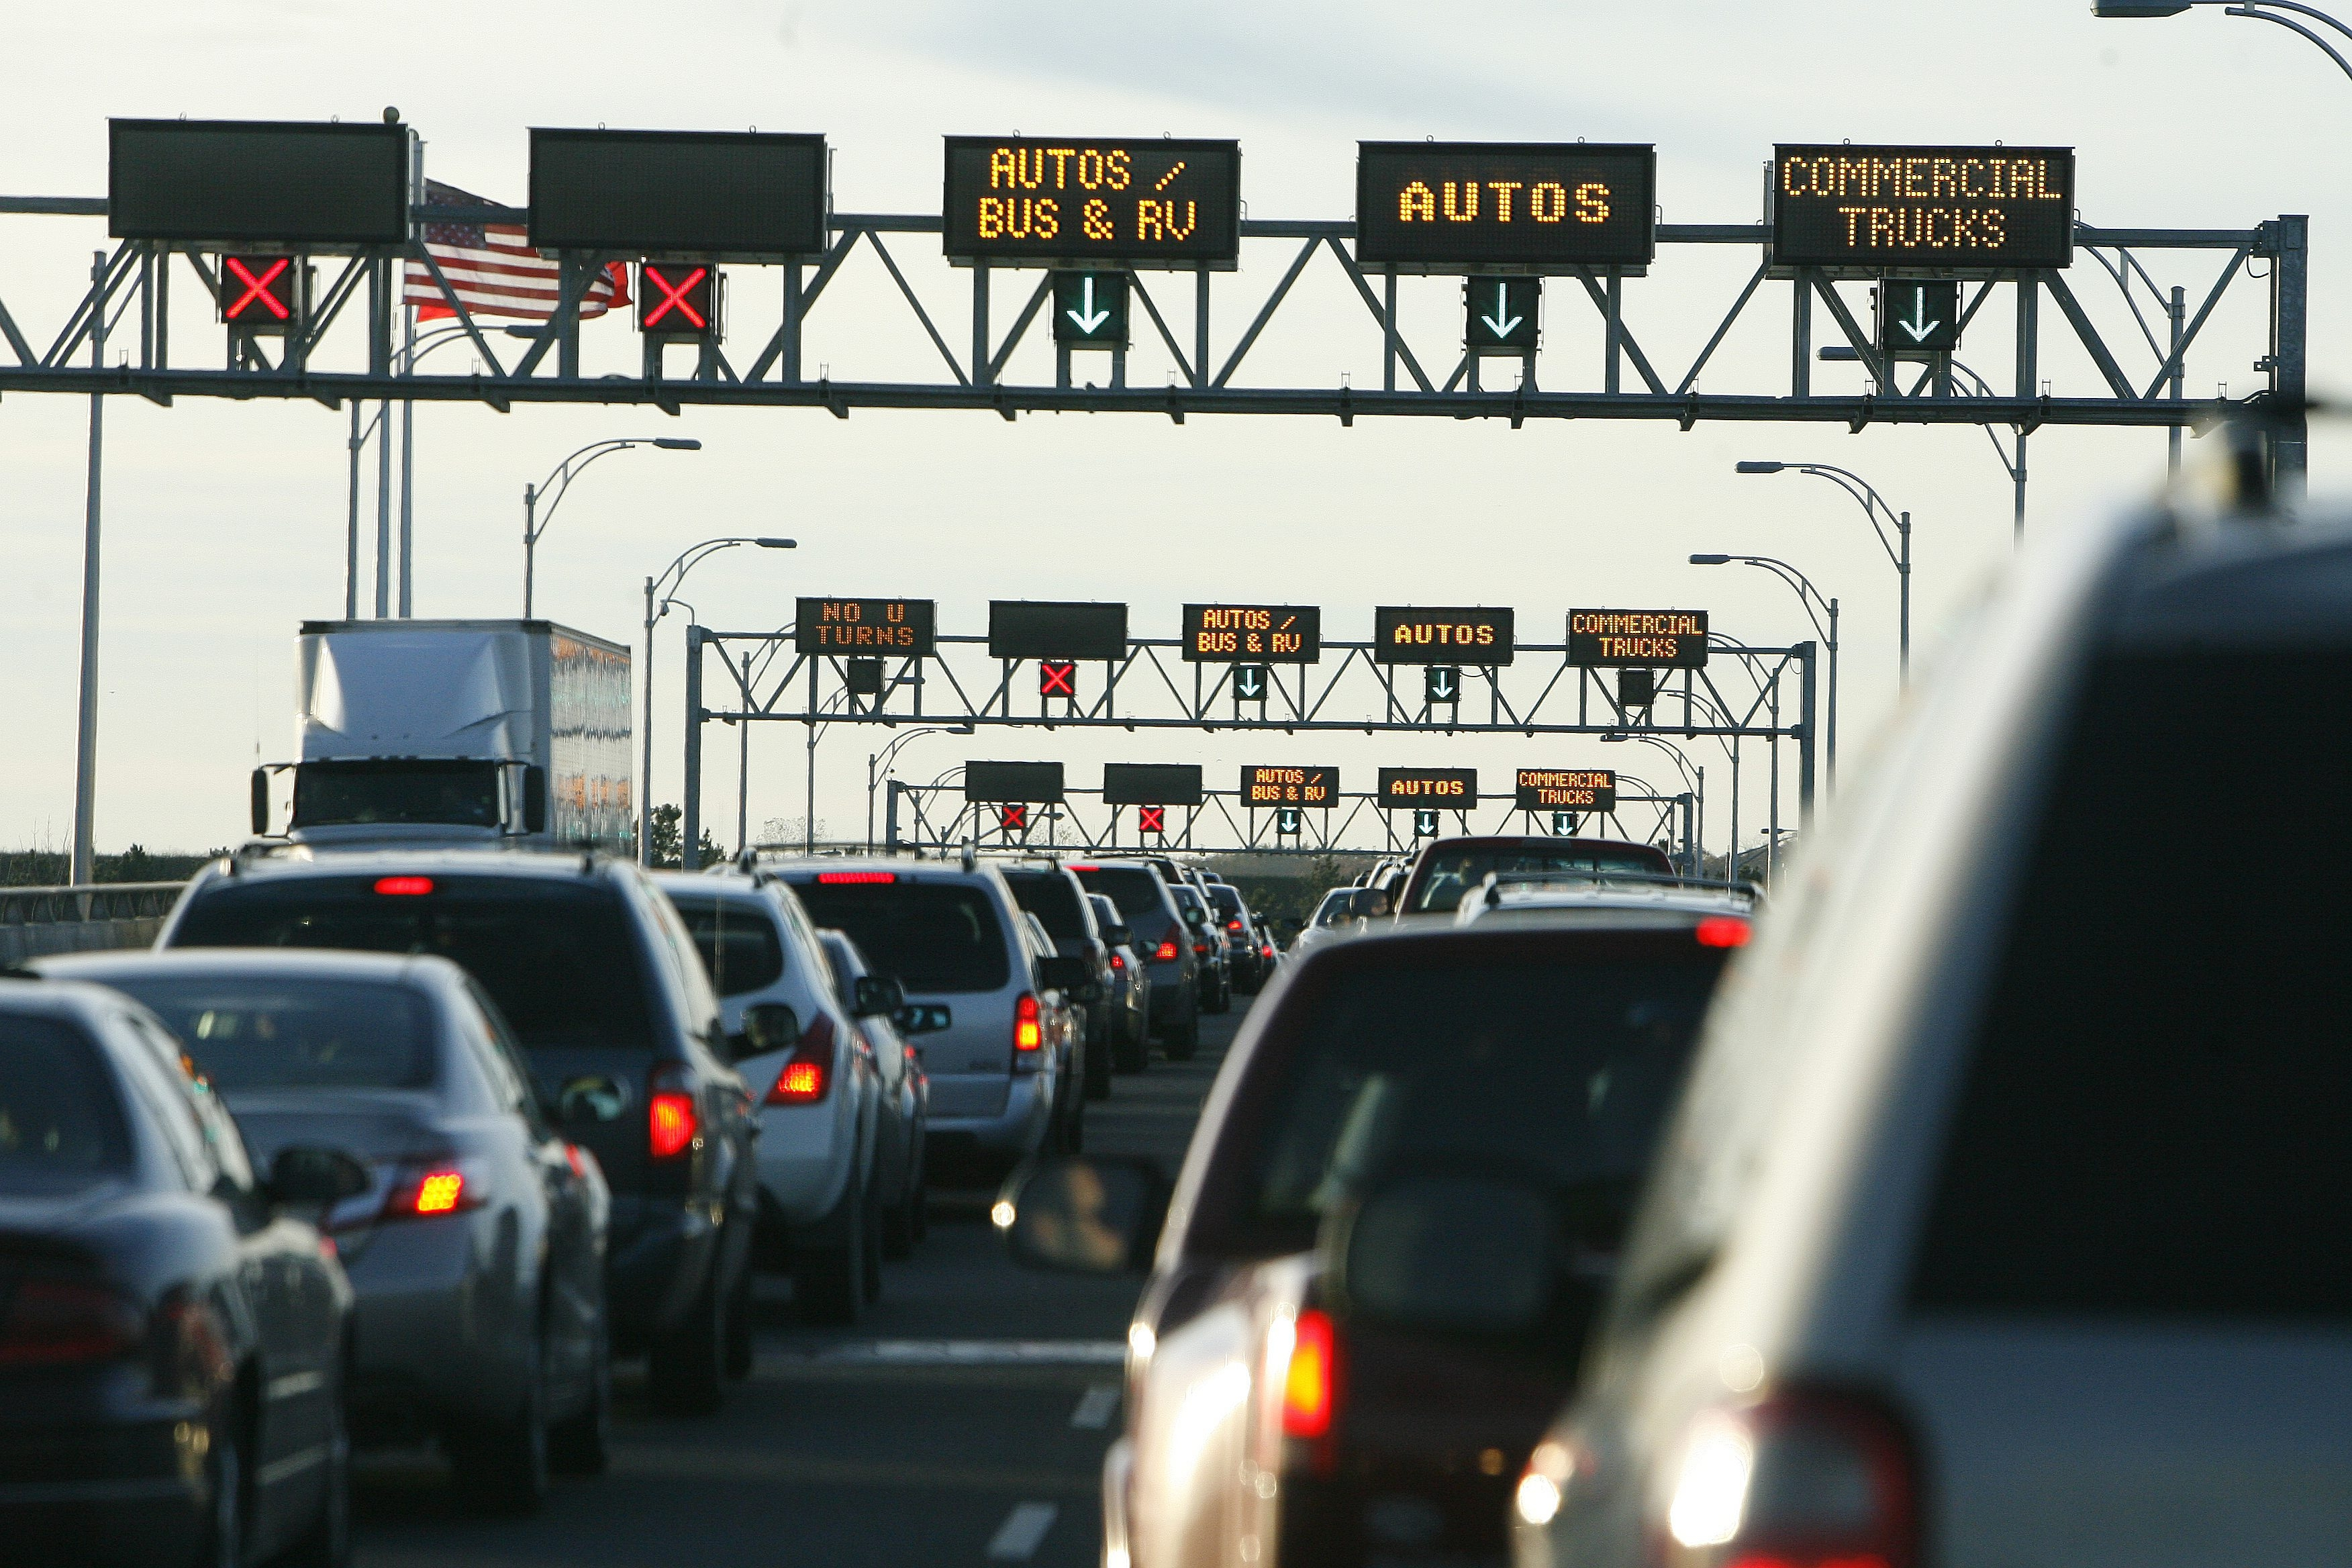 A News file photo shows traffic backed up on the Lewiston Queenston Bridge. (Buffalo News file photo)